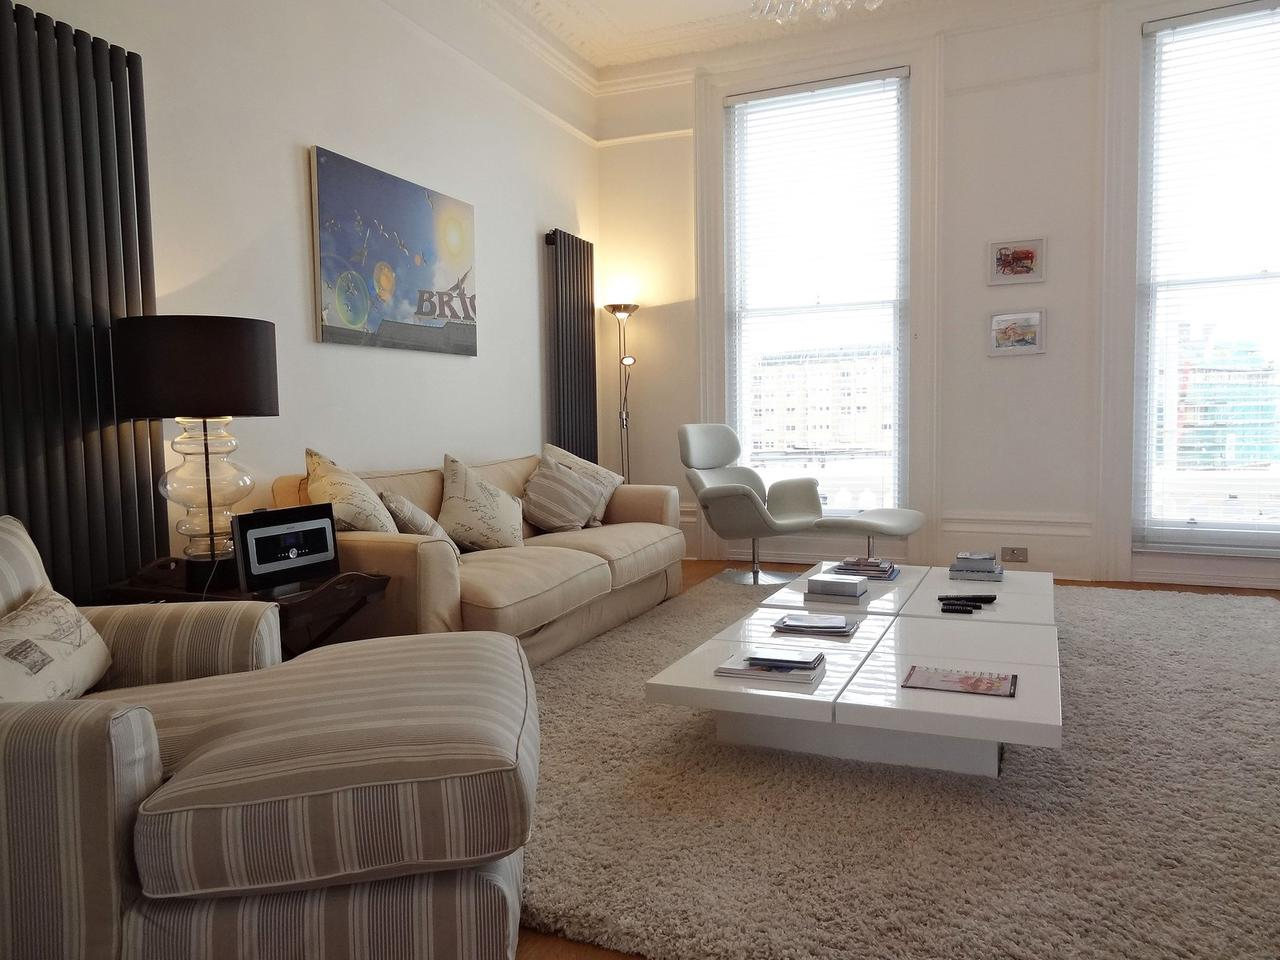 The Grand Seafront Apartment, Brighton & Hove Images - 25